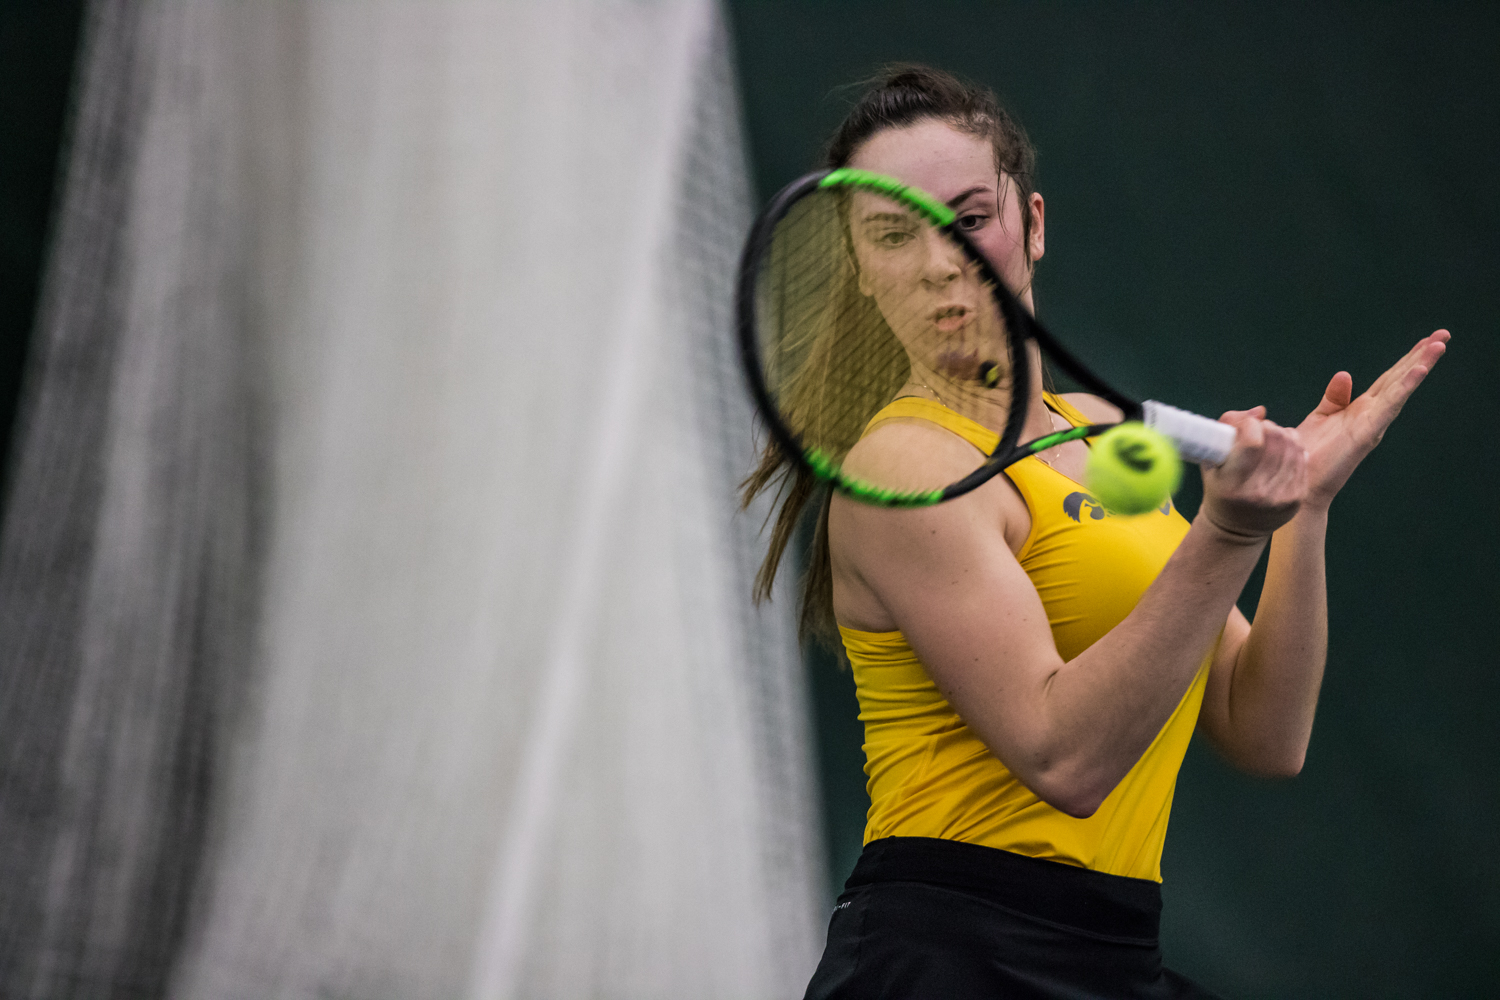 Iowa%27s+Samantha+Mannix+hits+a+forehand+during+a+women%27s+tennis+match+between+Iowa+and+Xavier+at+the+Hawkeye+Tennis+and+Recreation+Center+on+Friday%2C+January+18%2C+2019.+The+Hawkeyes+swept+the+Musketeers%2C+7-0.